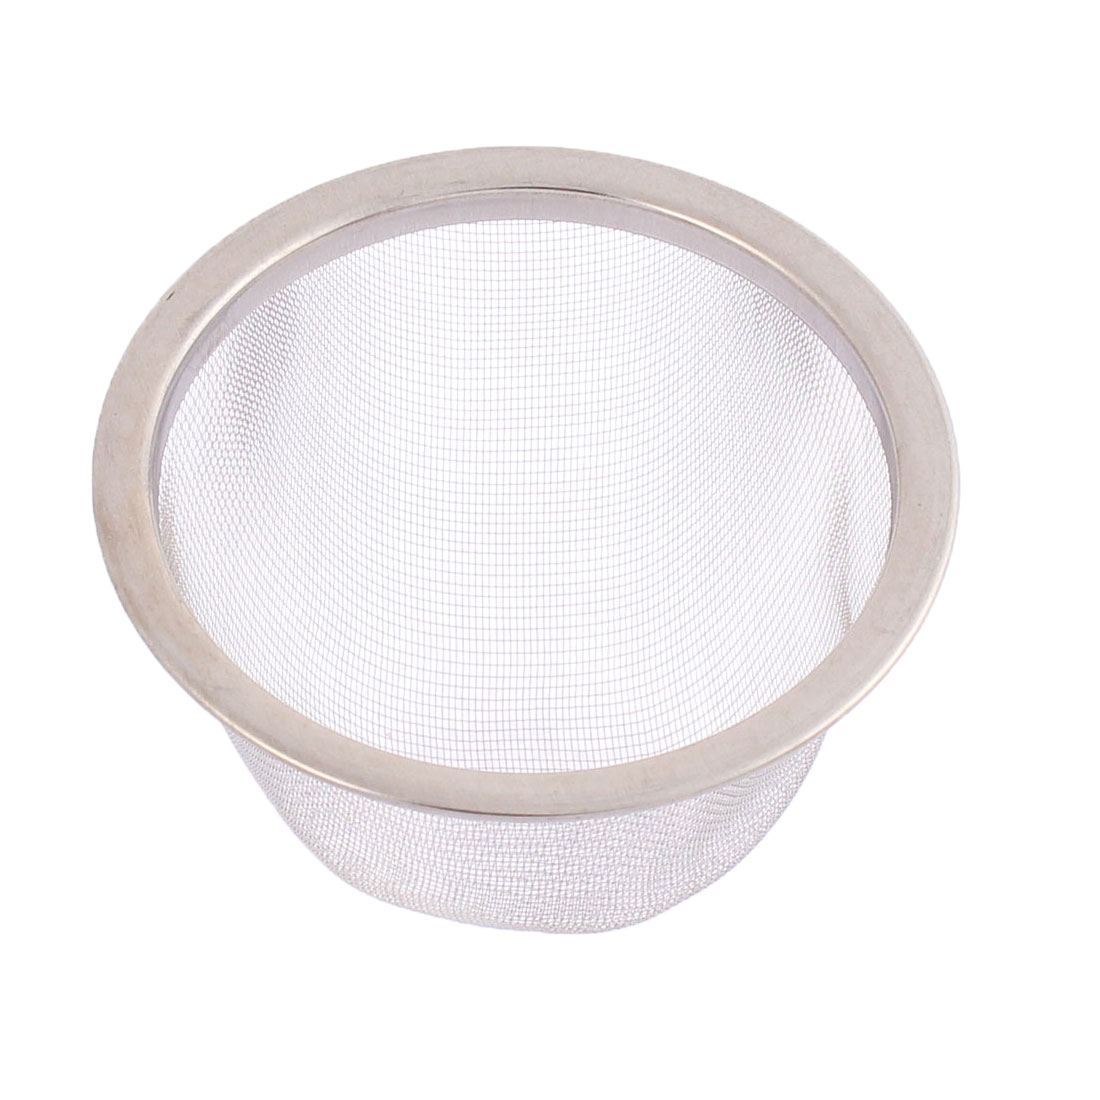 Kettle Tea Leaf Spice Mesh Infuser Filter Strainer 75mm x 60mm